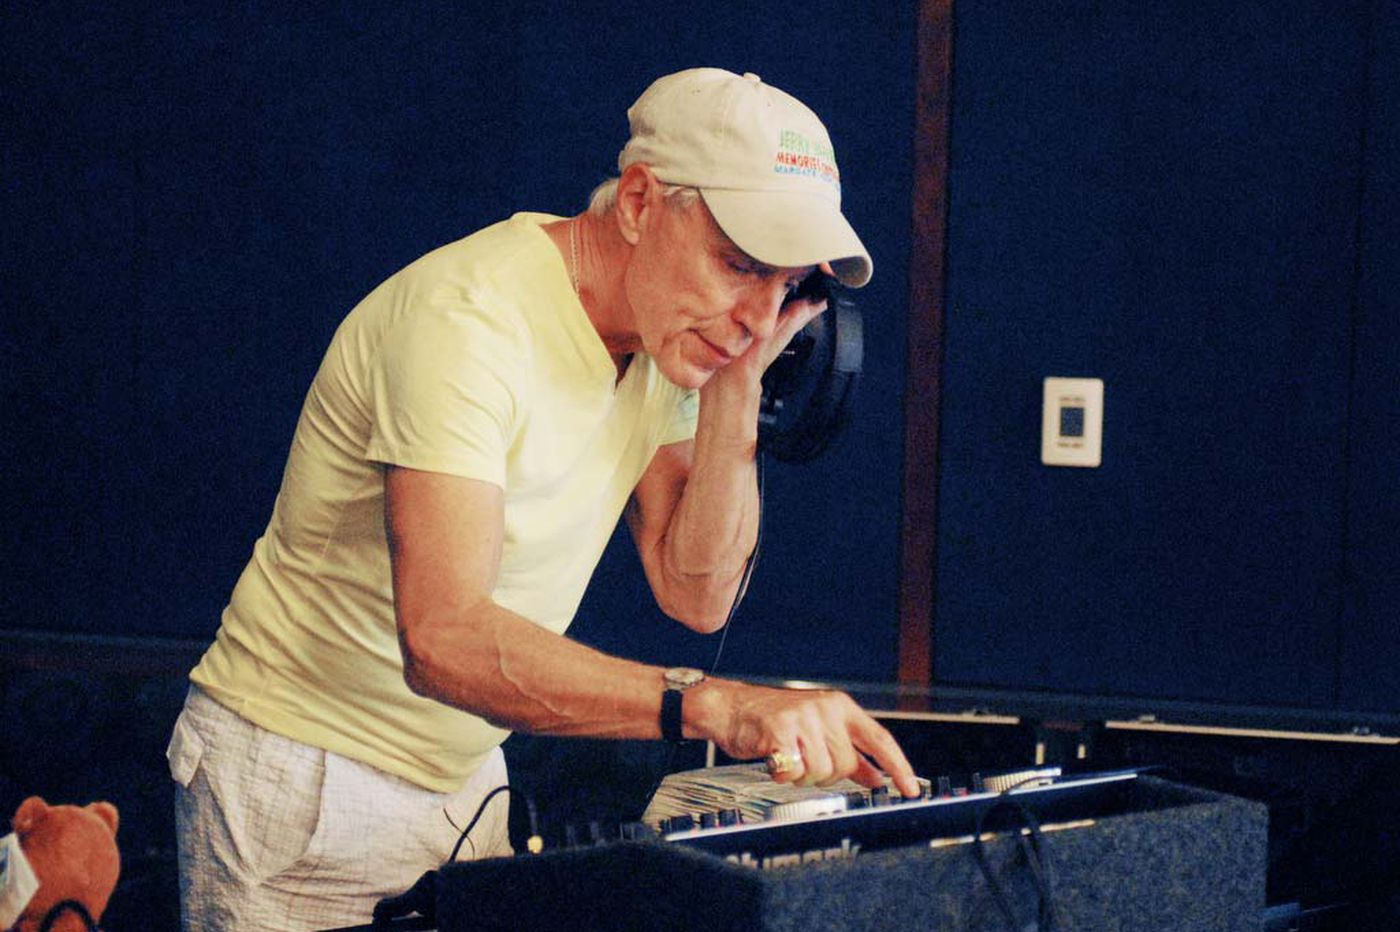 Jerry Blavat's command of language goes beyond clever rhymes | The Angry Grammarian